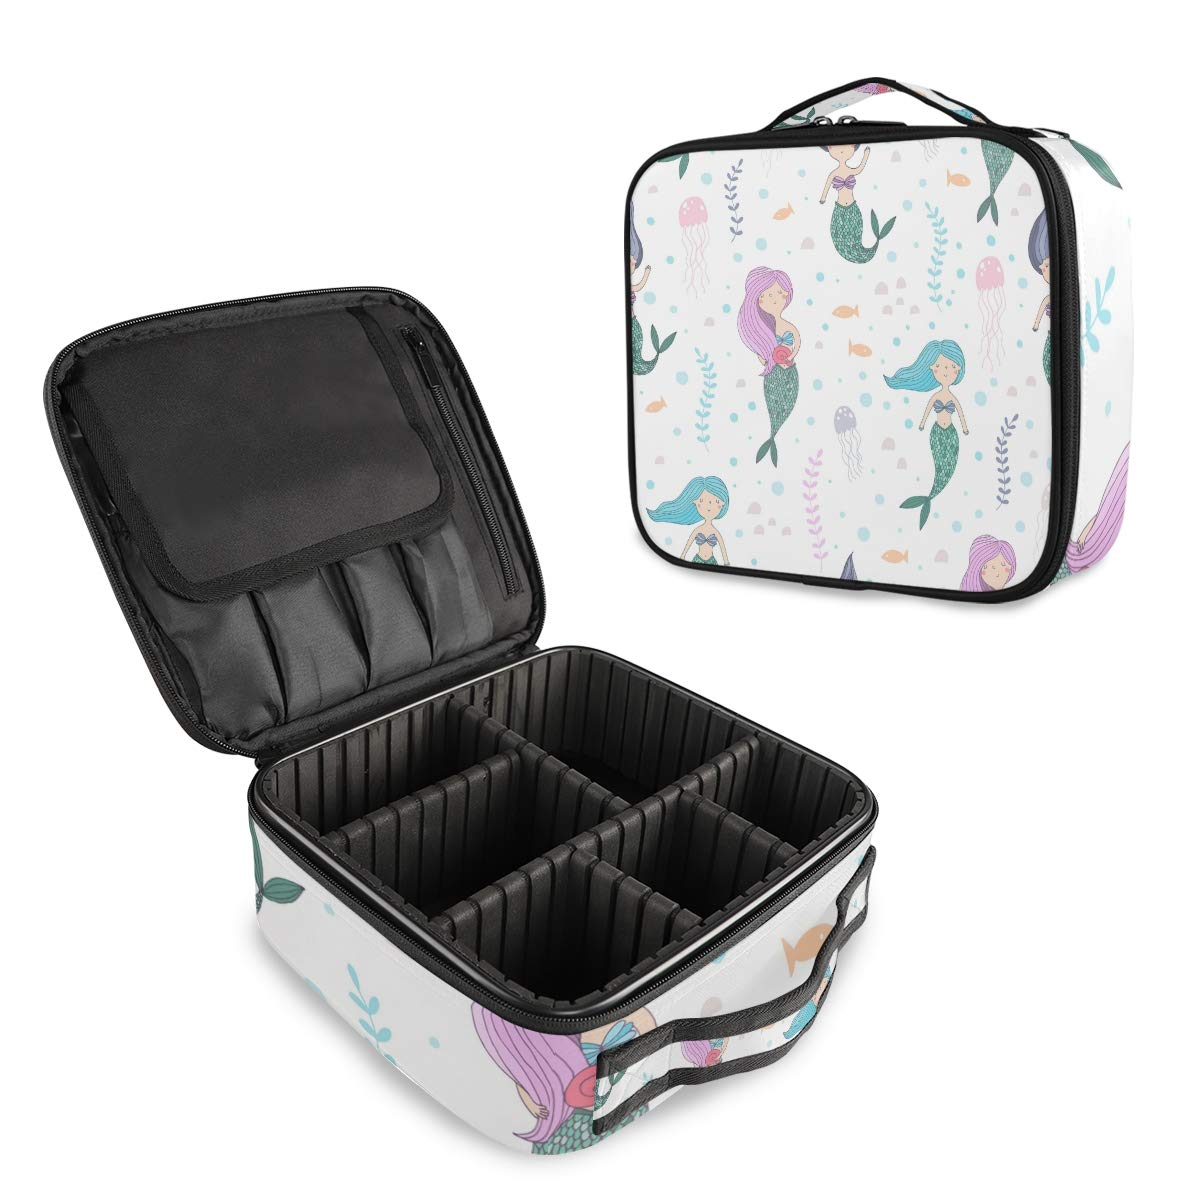 ALAZA Coral Reef Pubble Mermaid Fish Makeup Cosmetic Case Organizer Portable Storage Bag Travel Makeup Train Case with Adjustable Dividers